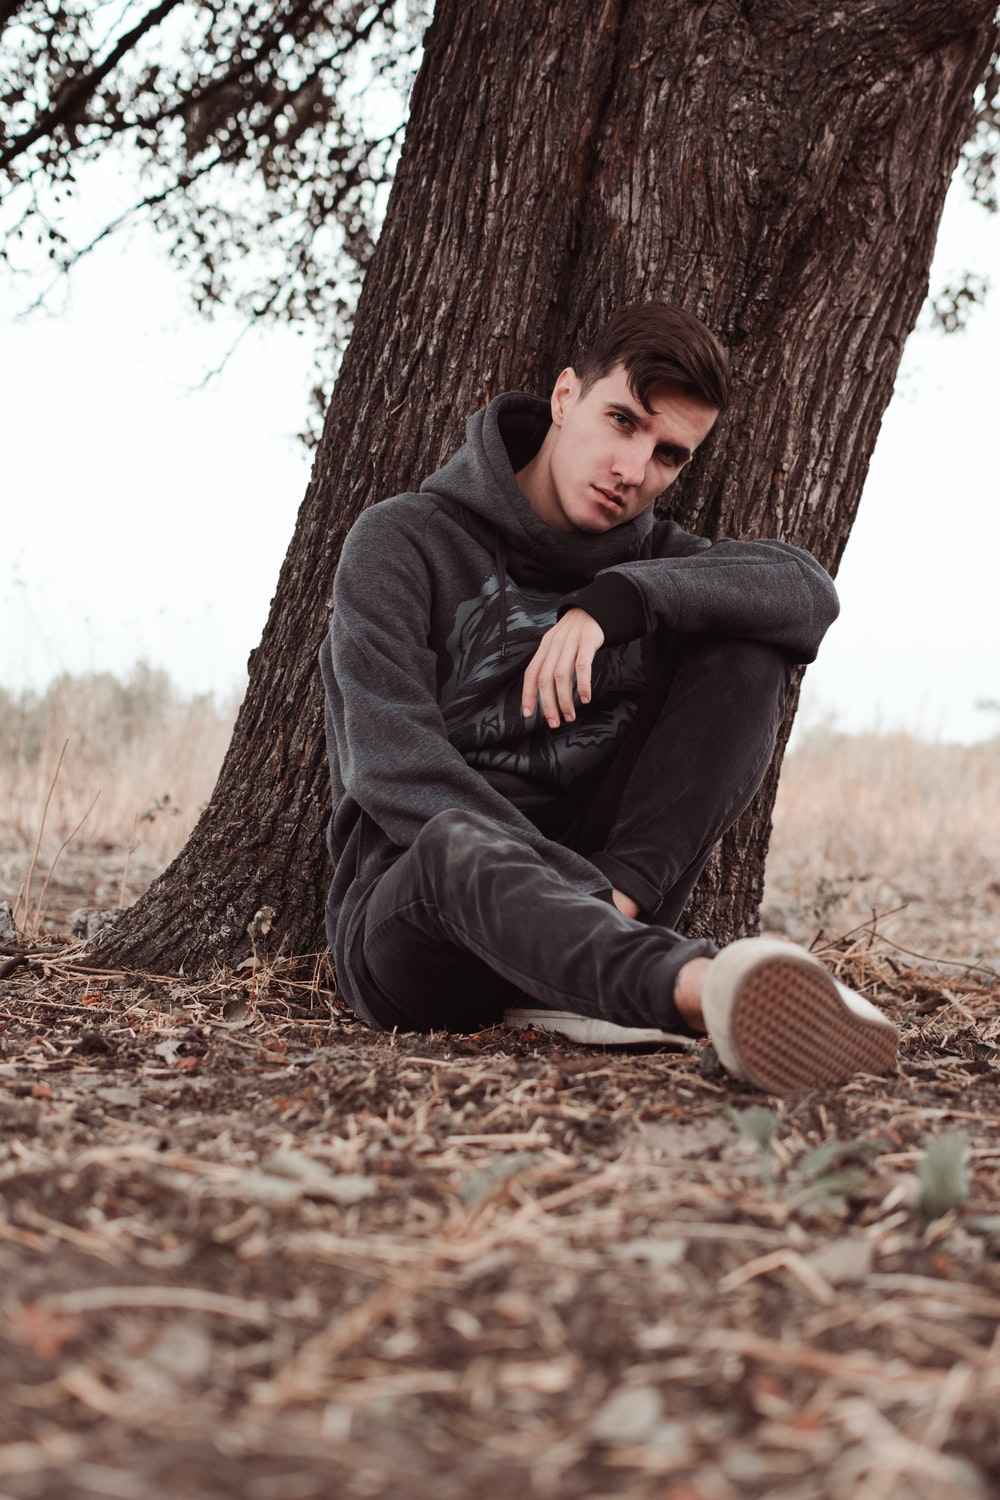 man leaning on tree during daytime. Who needs you to help facilitate his monologue on his emotions